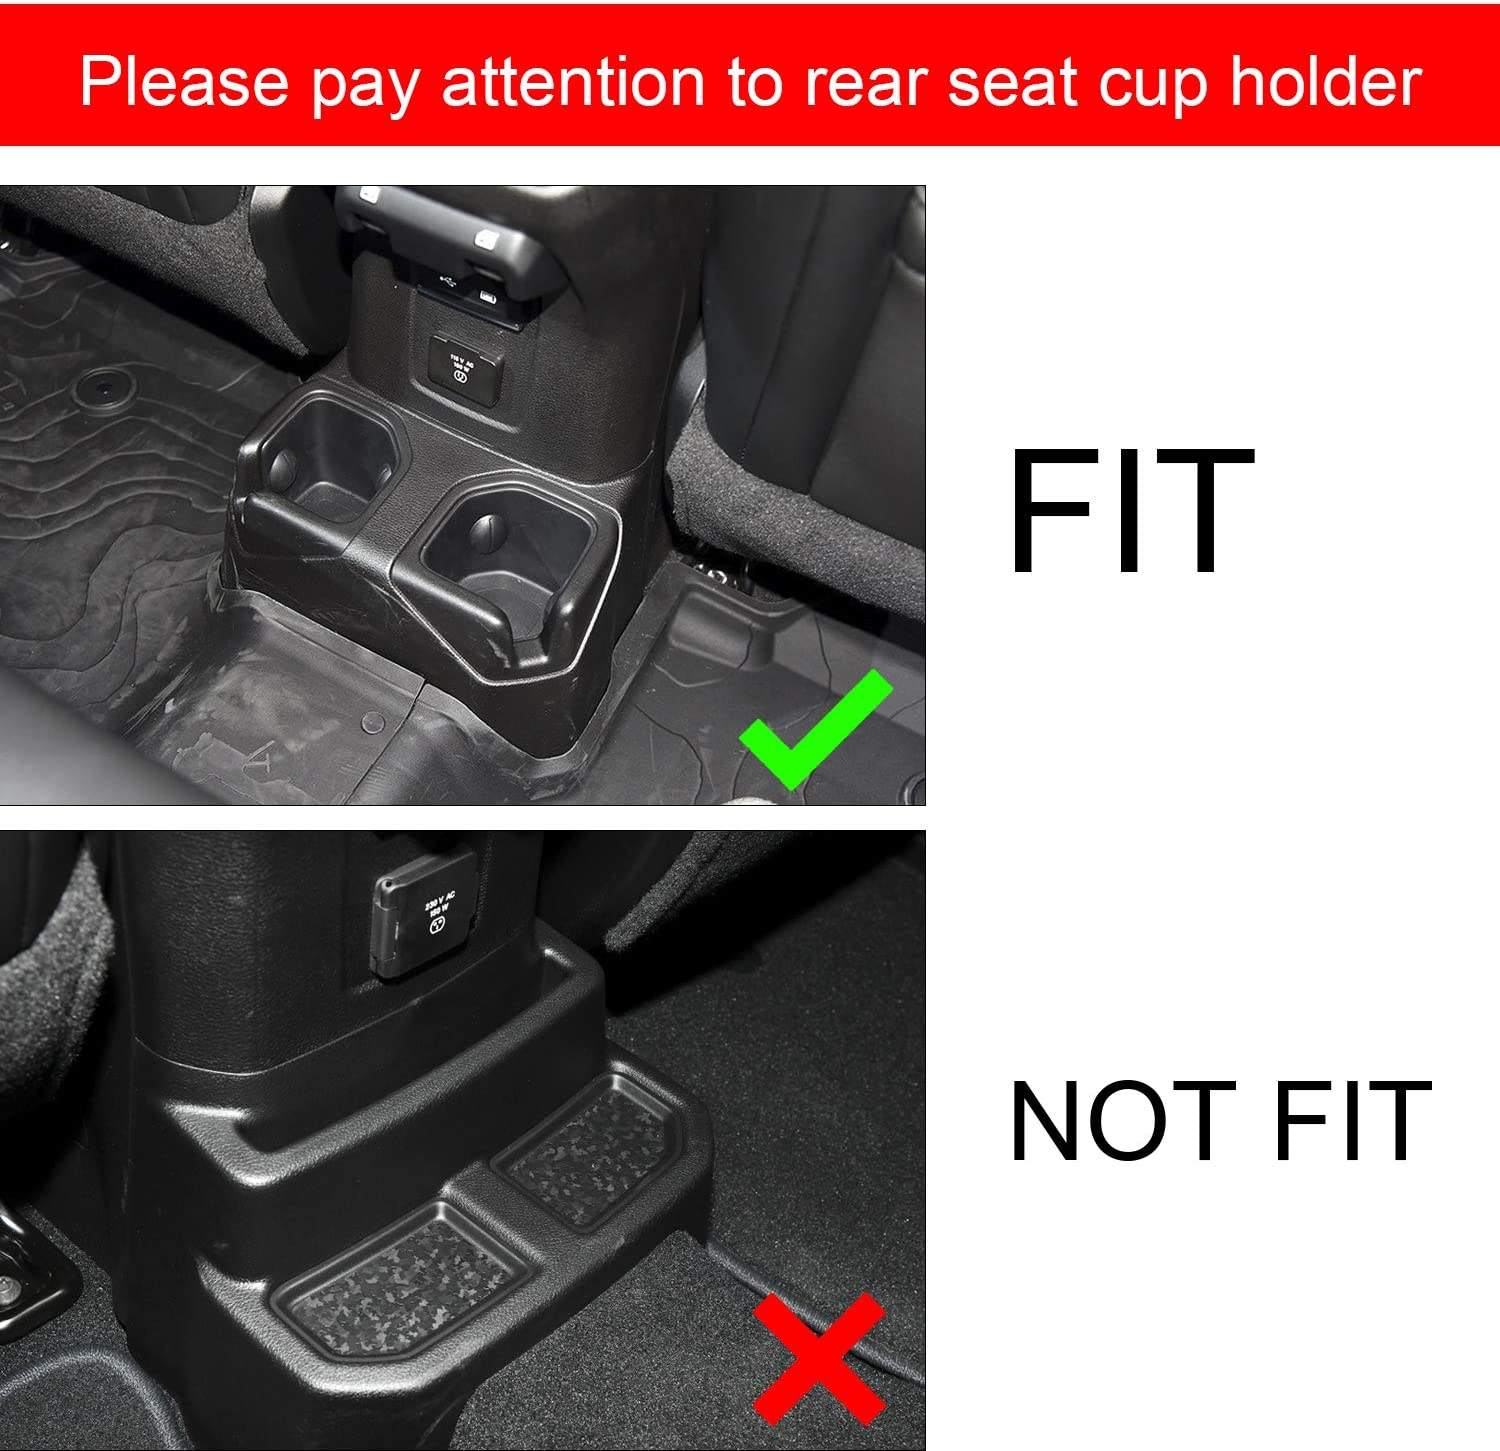 ABESTcar Cup Holder Insert Cup Coaster for 2018 2019 Jeep Wrangler JL JLU 2020 Gladiator JT Cup Mat Pad Inserts aInterior Accessories 4 Pcs Kit,Red Trim